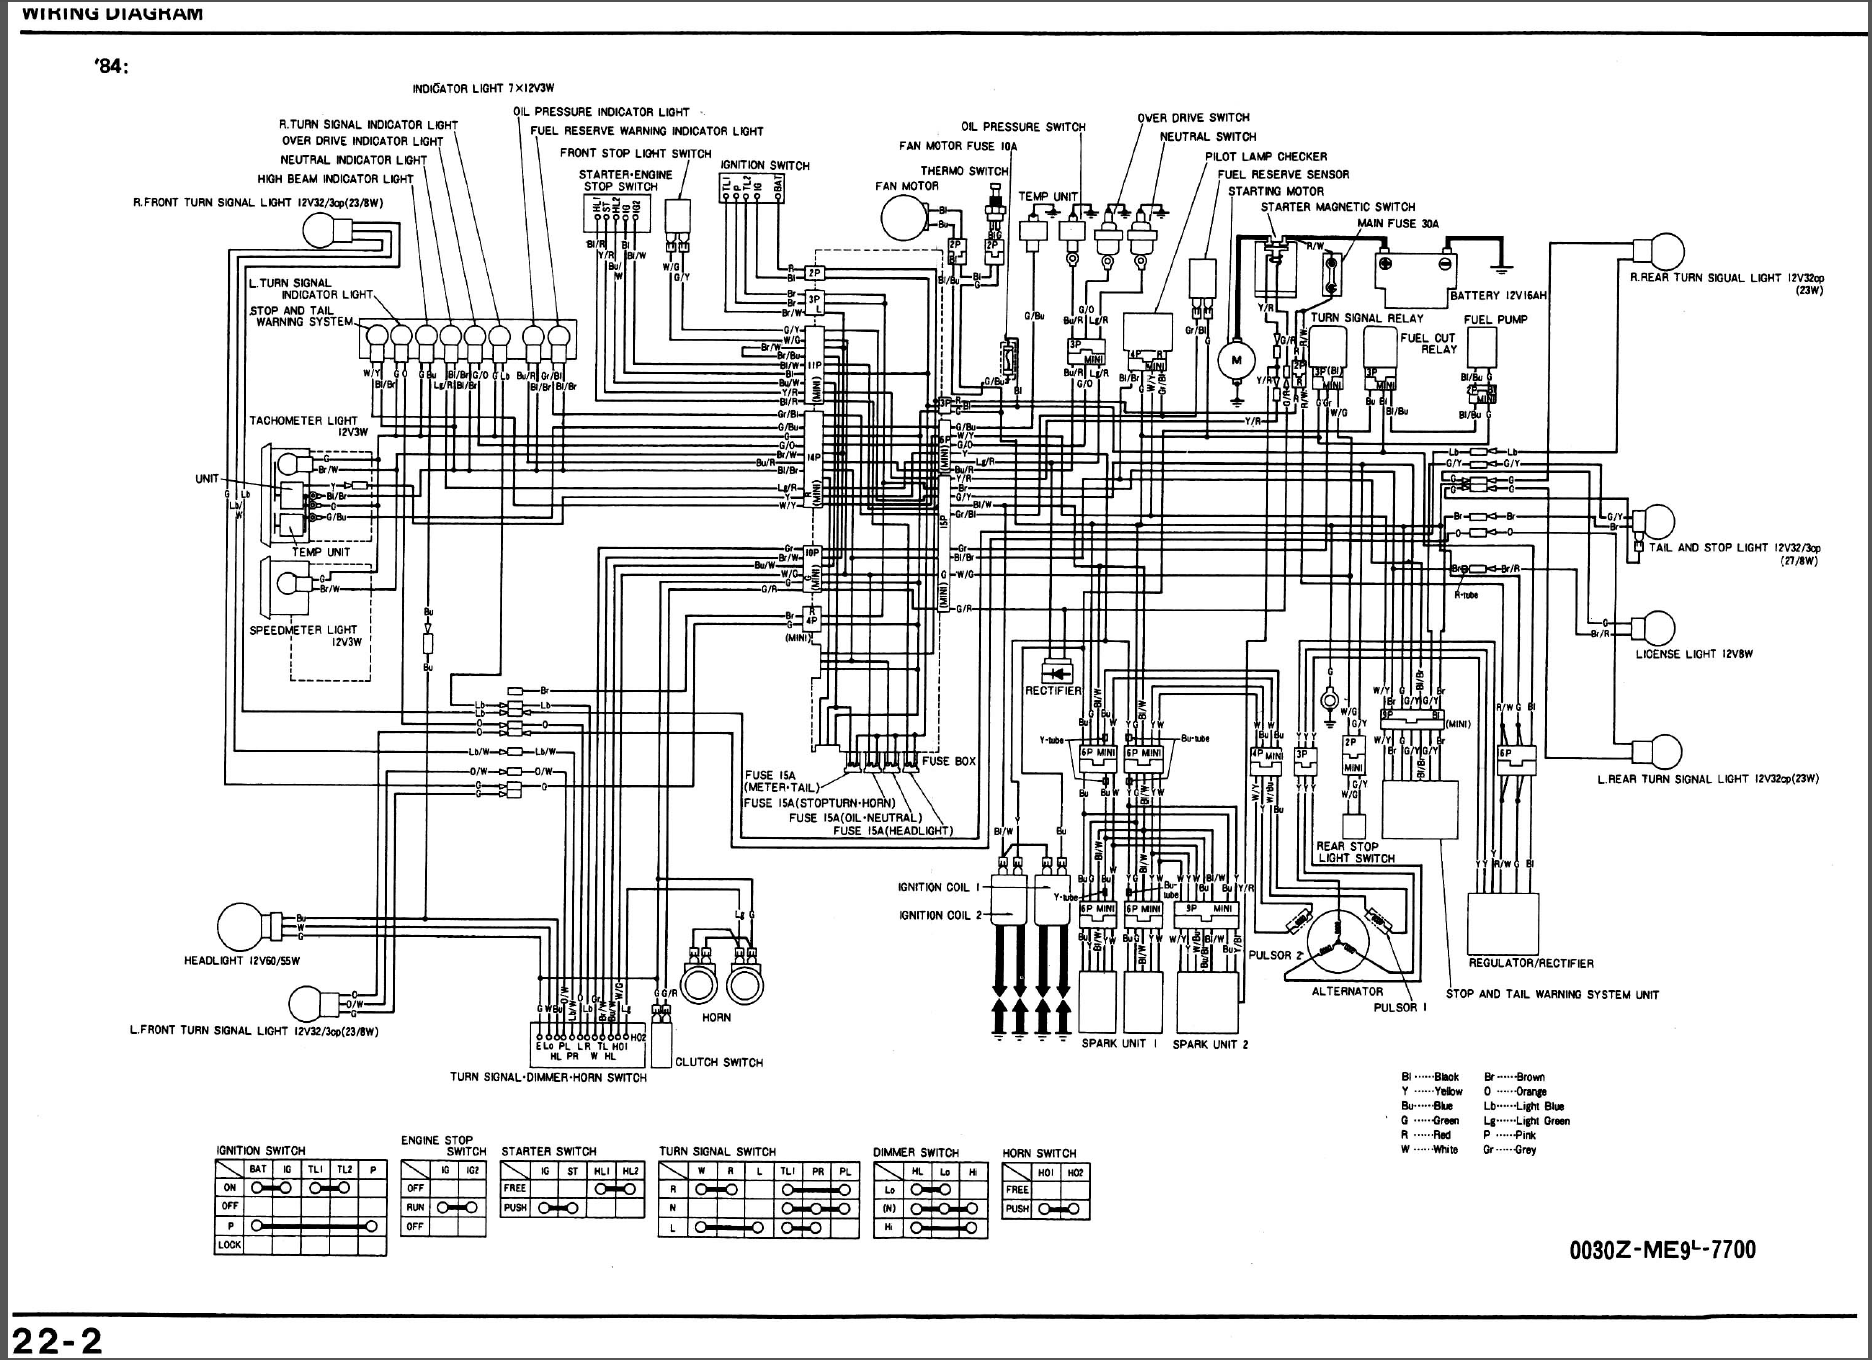 1985 Vt700 Wiring Diagram Custom Honda 85 Shadow 700 Online Schematic U2022 Rh Muscle Pharma Co Simple Diagrams